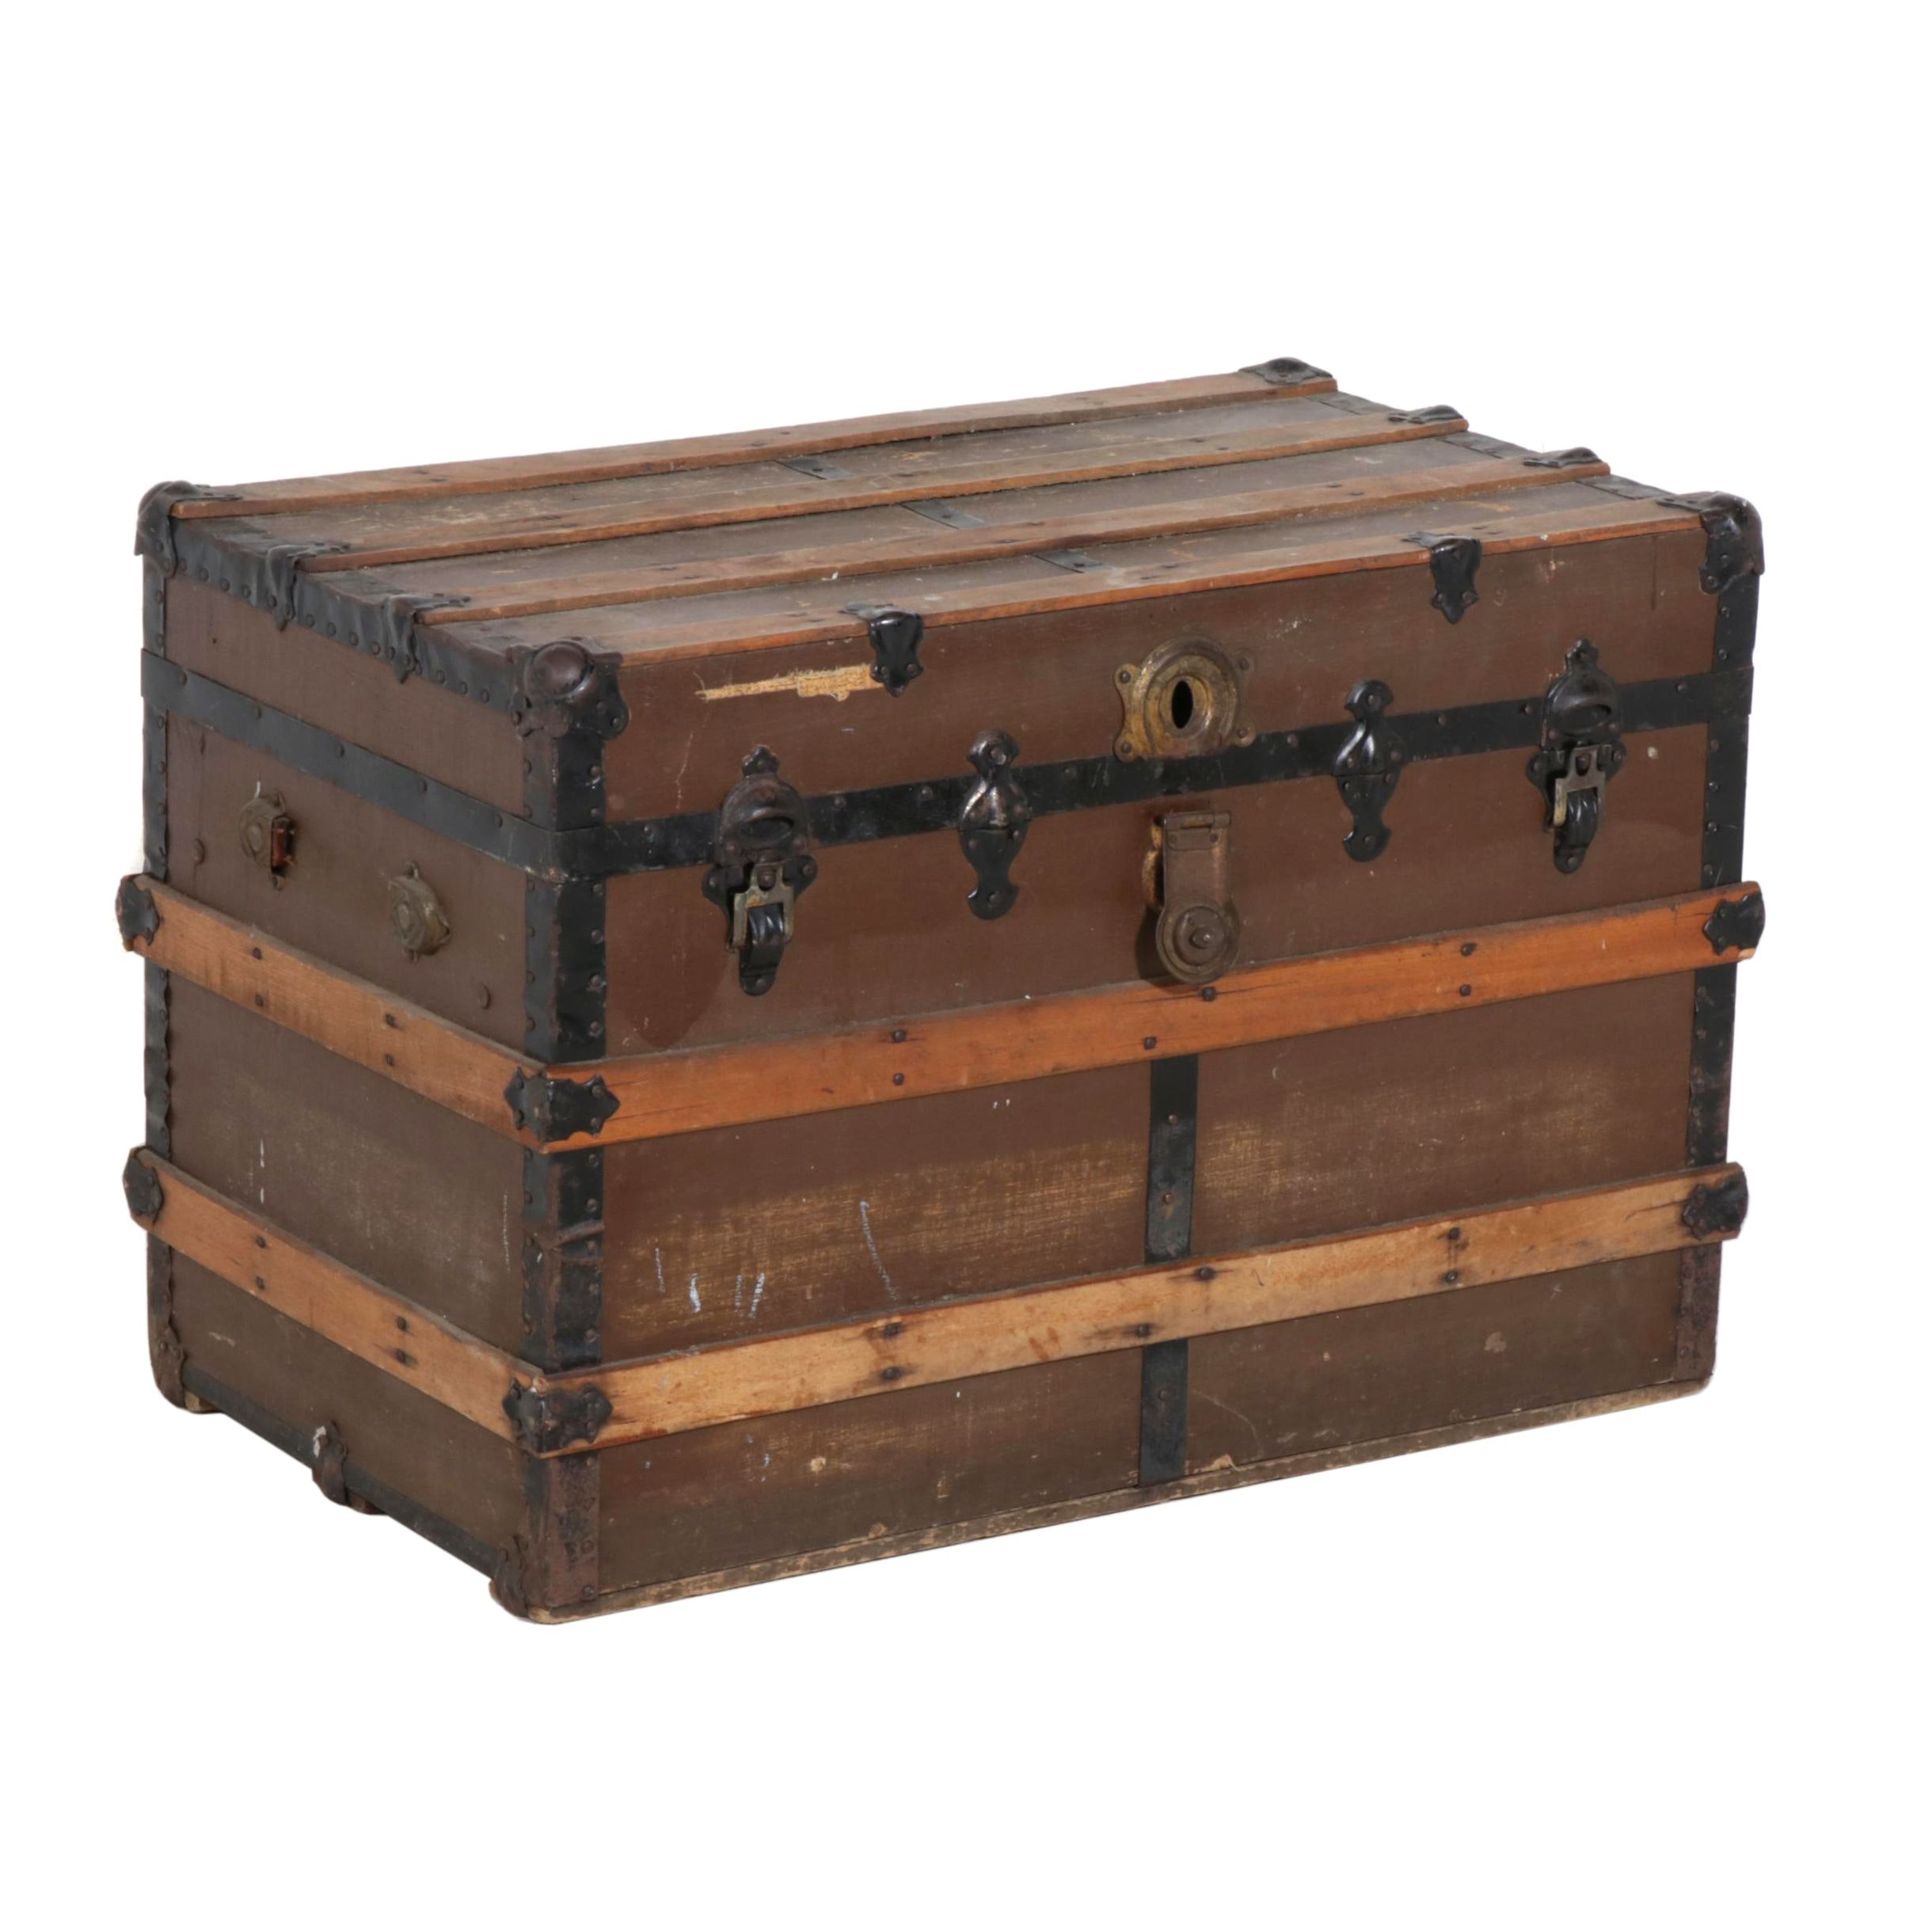 Wood Steamer Trunk, Early 20th Century